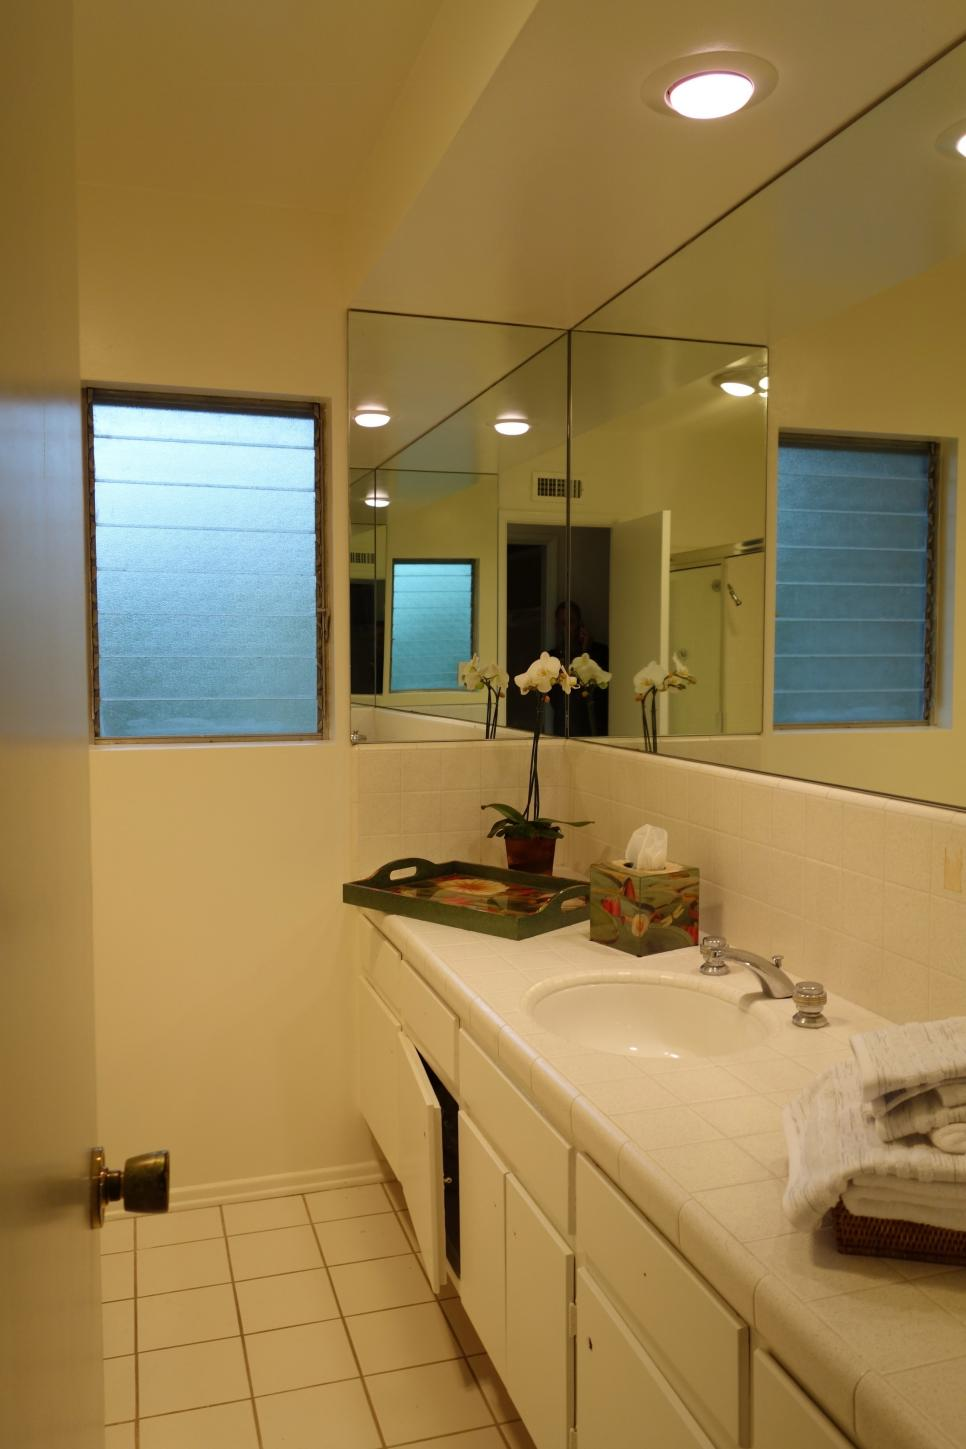 Before and after bathroom remodels on a budget hgtv for Bath remodel ideas